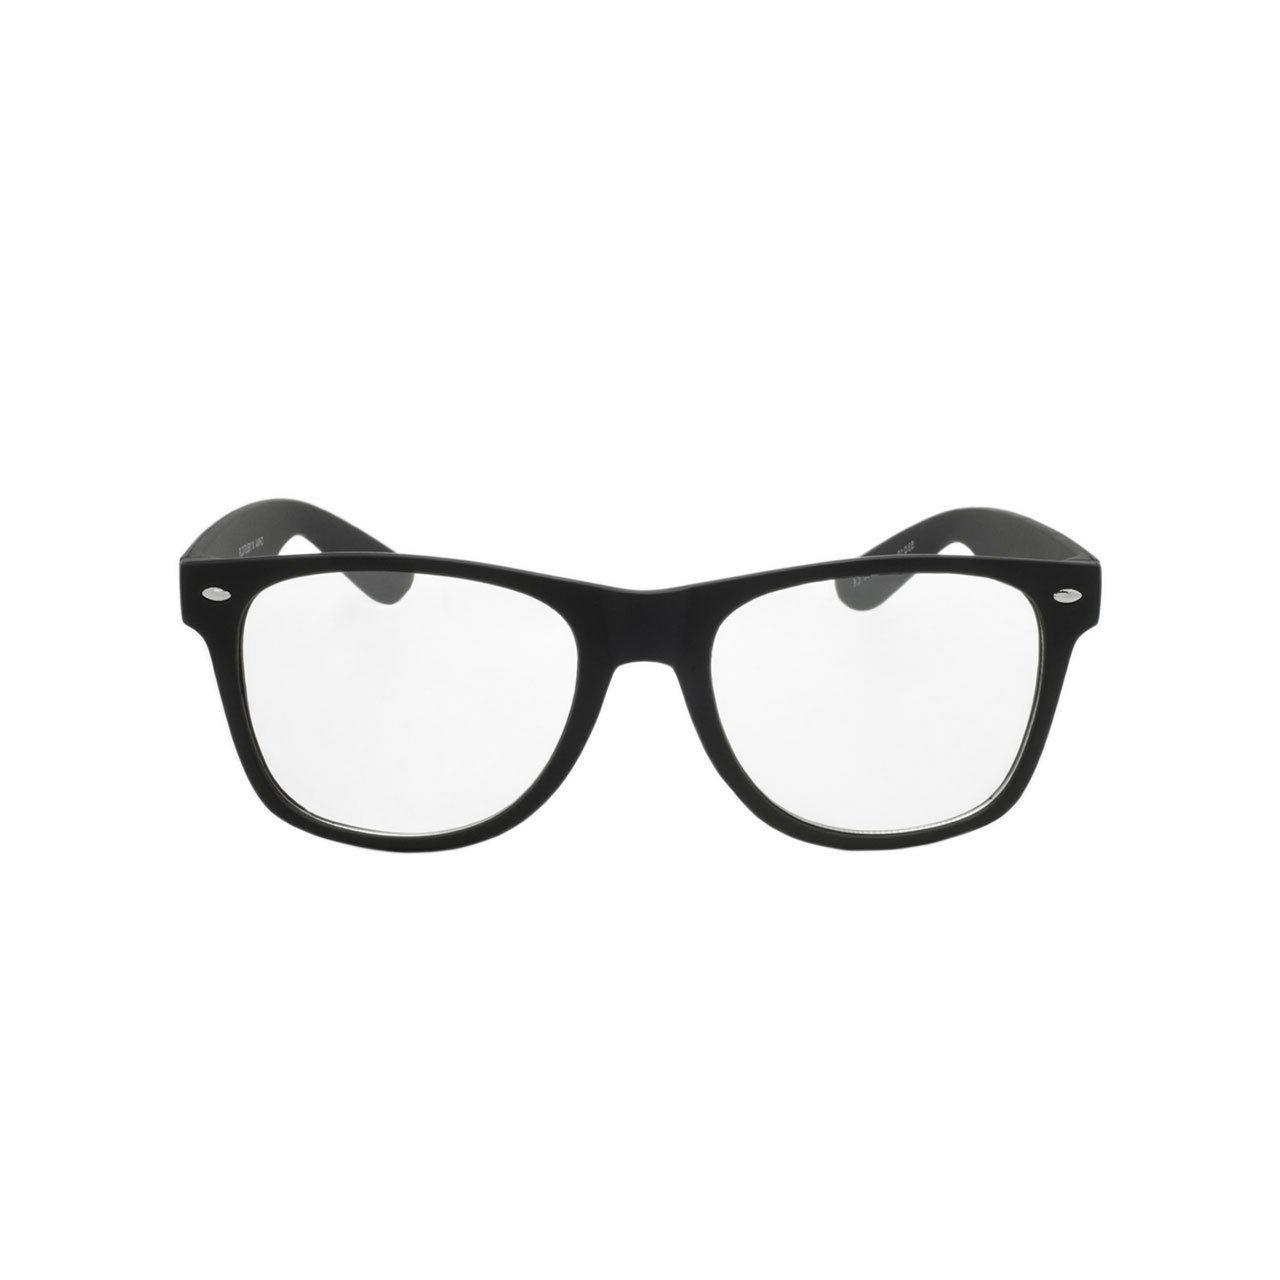 Nerd Style Clear Lens Glasses Pair Womens Sunglasses